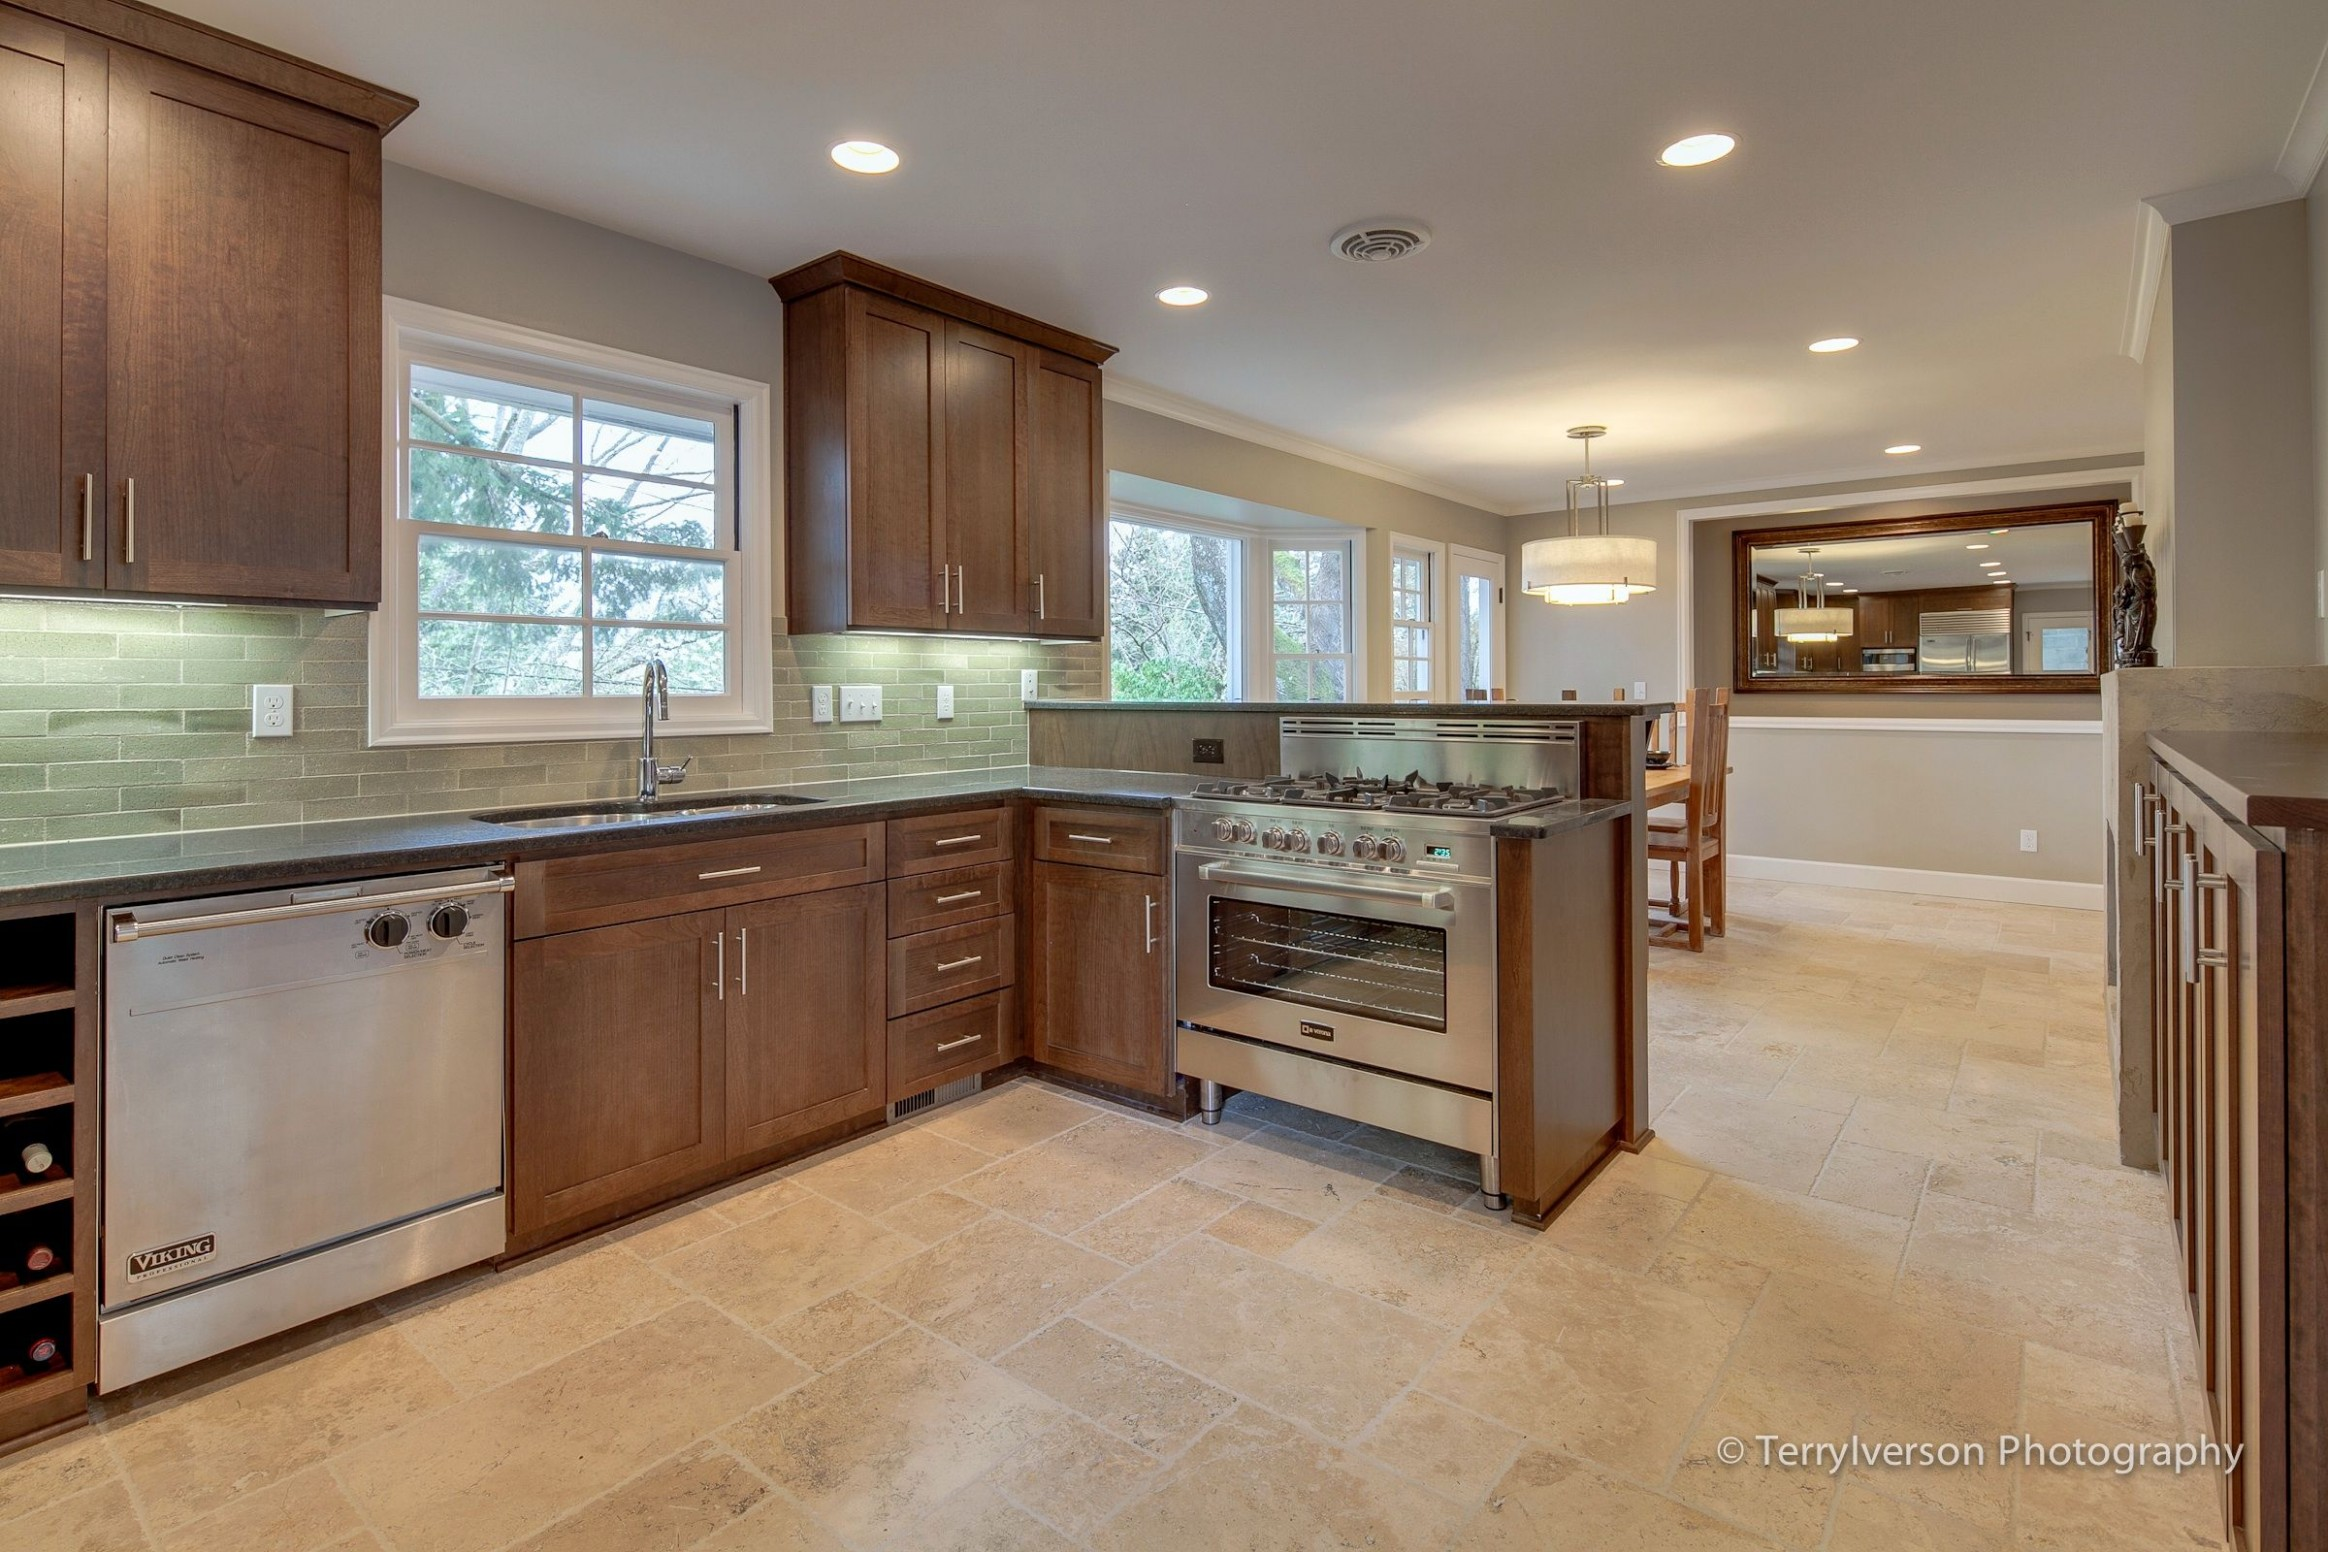 Travertine Kitchen Floor  Kitchen and dining room with travertine  - Dining Room Tile Ideas